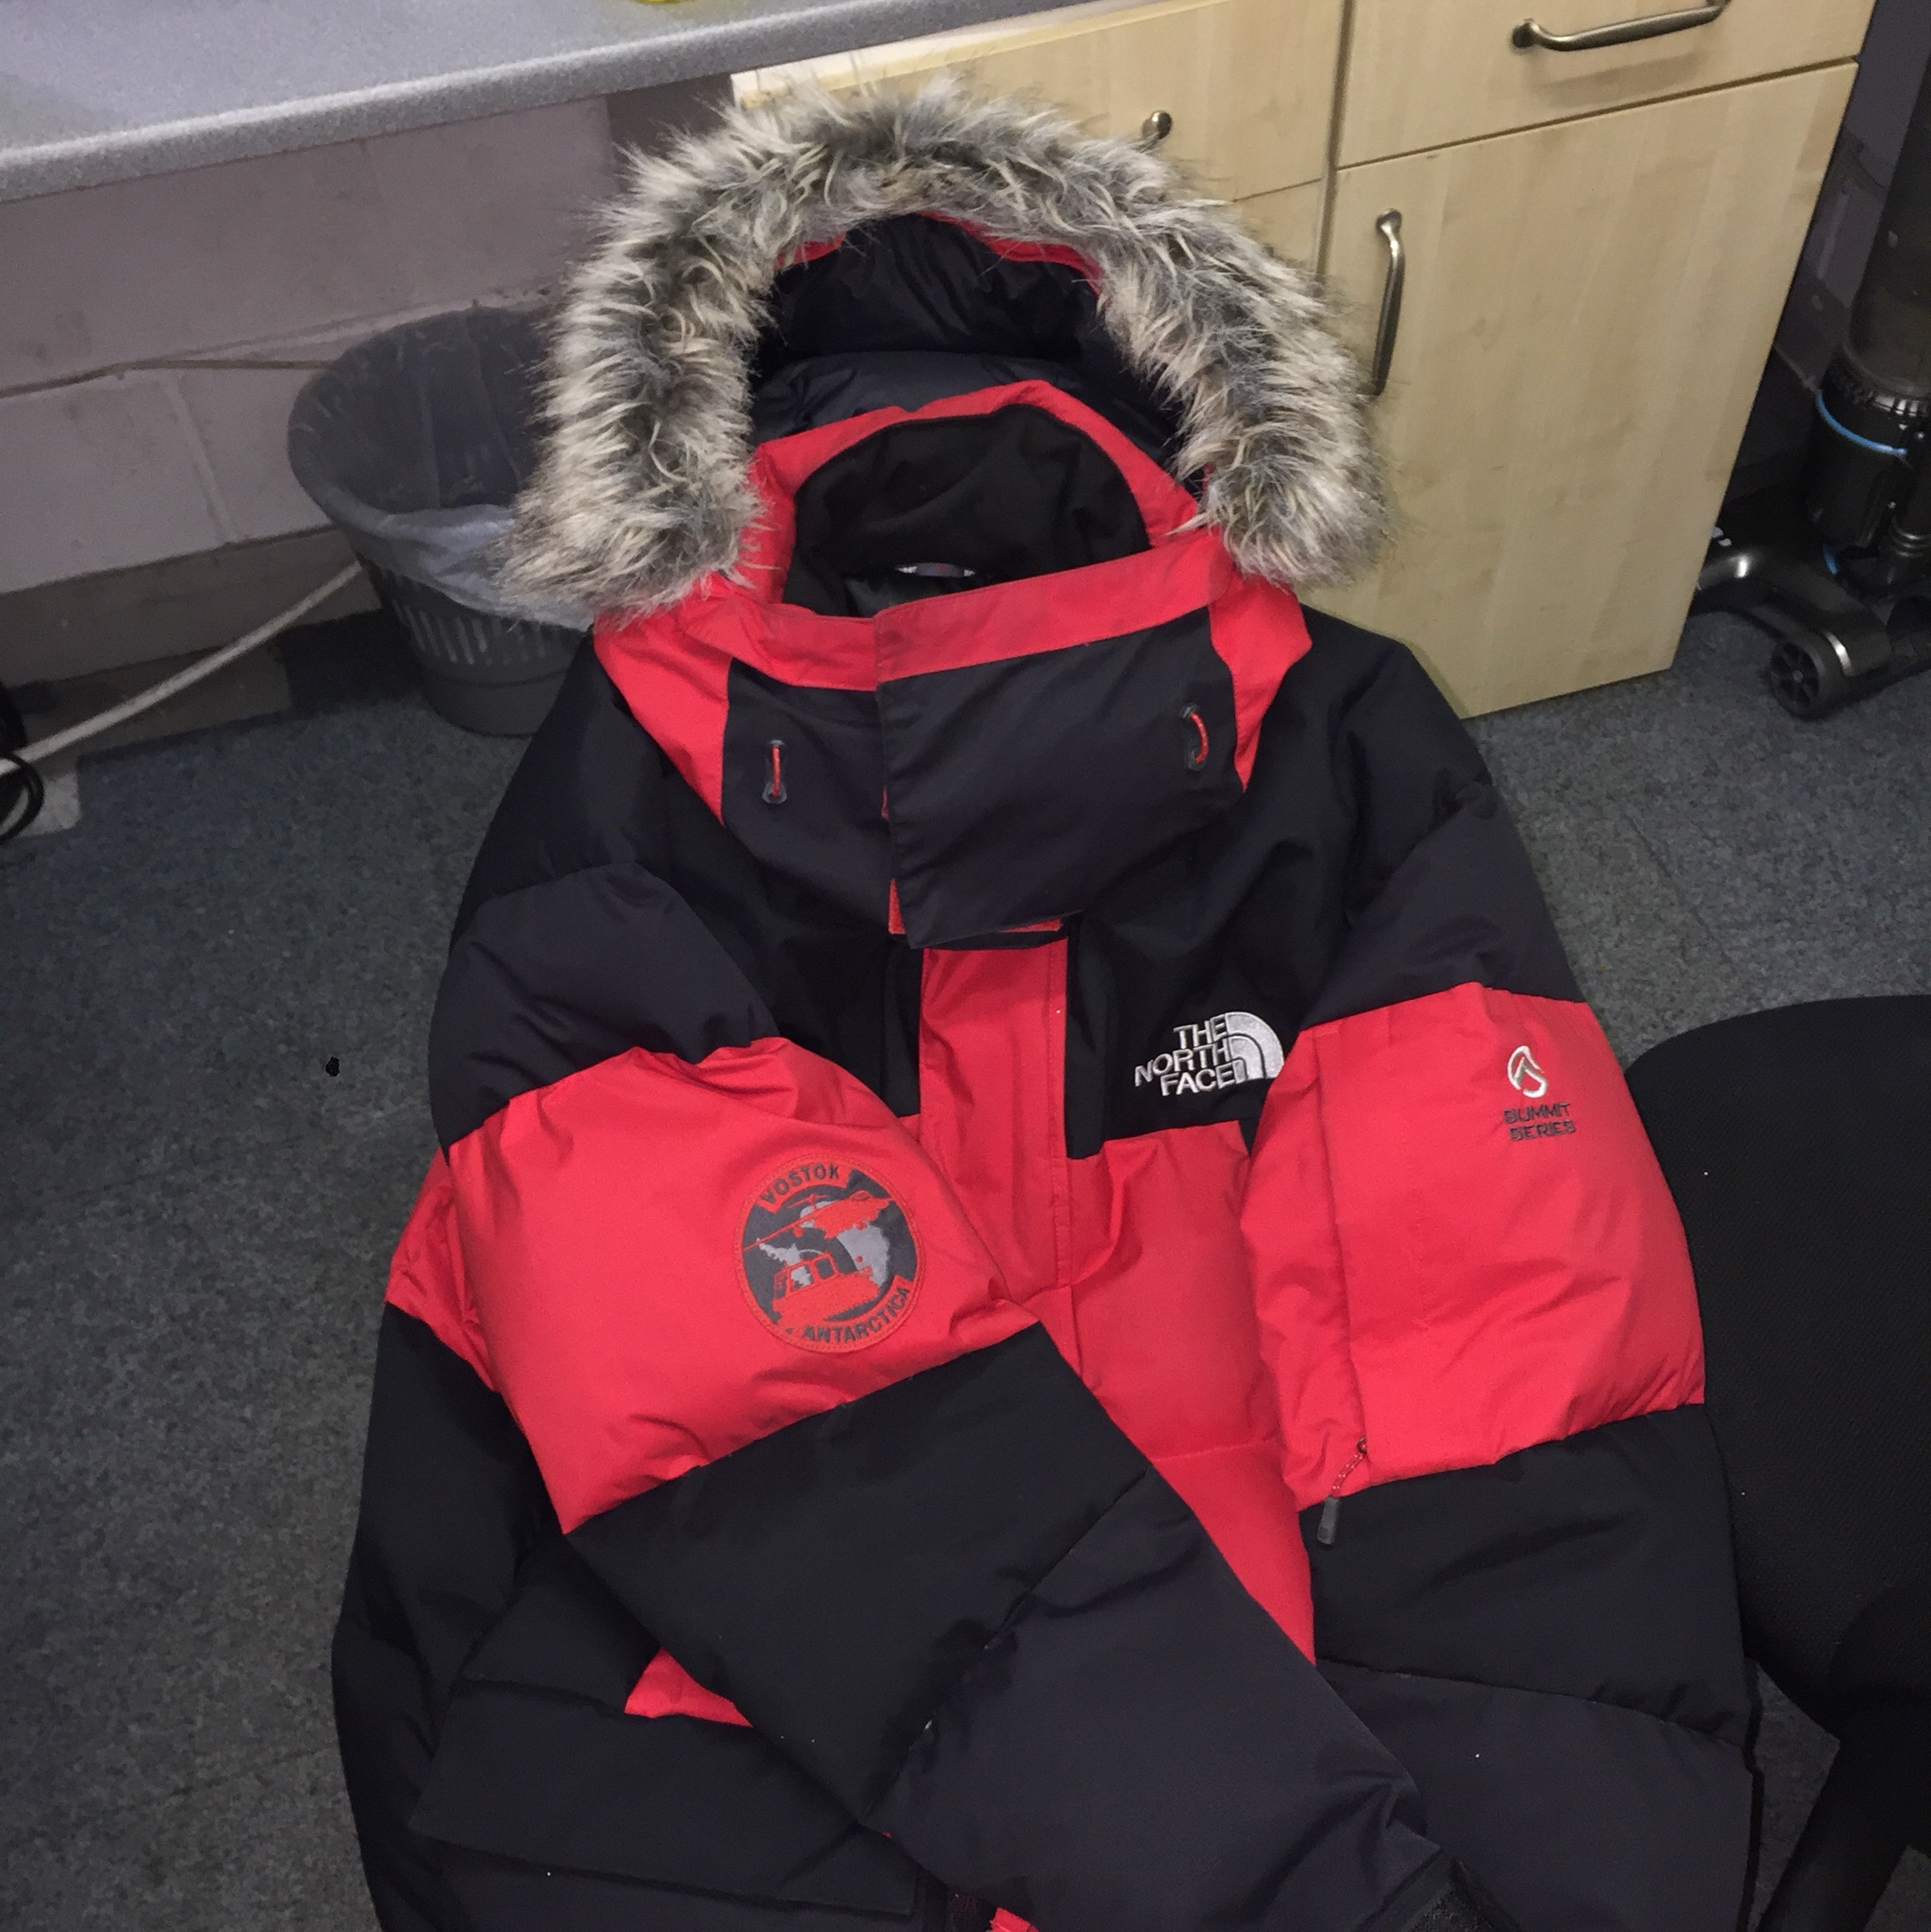 Vostok Depop for £450810 The Face North ParkaBought vgyb7fY6